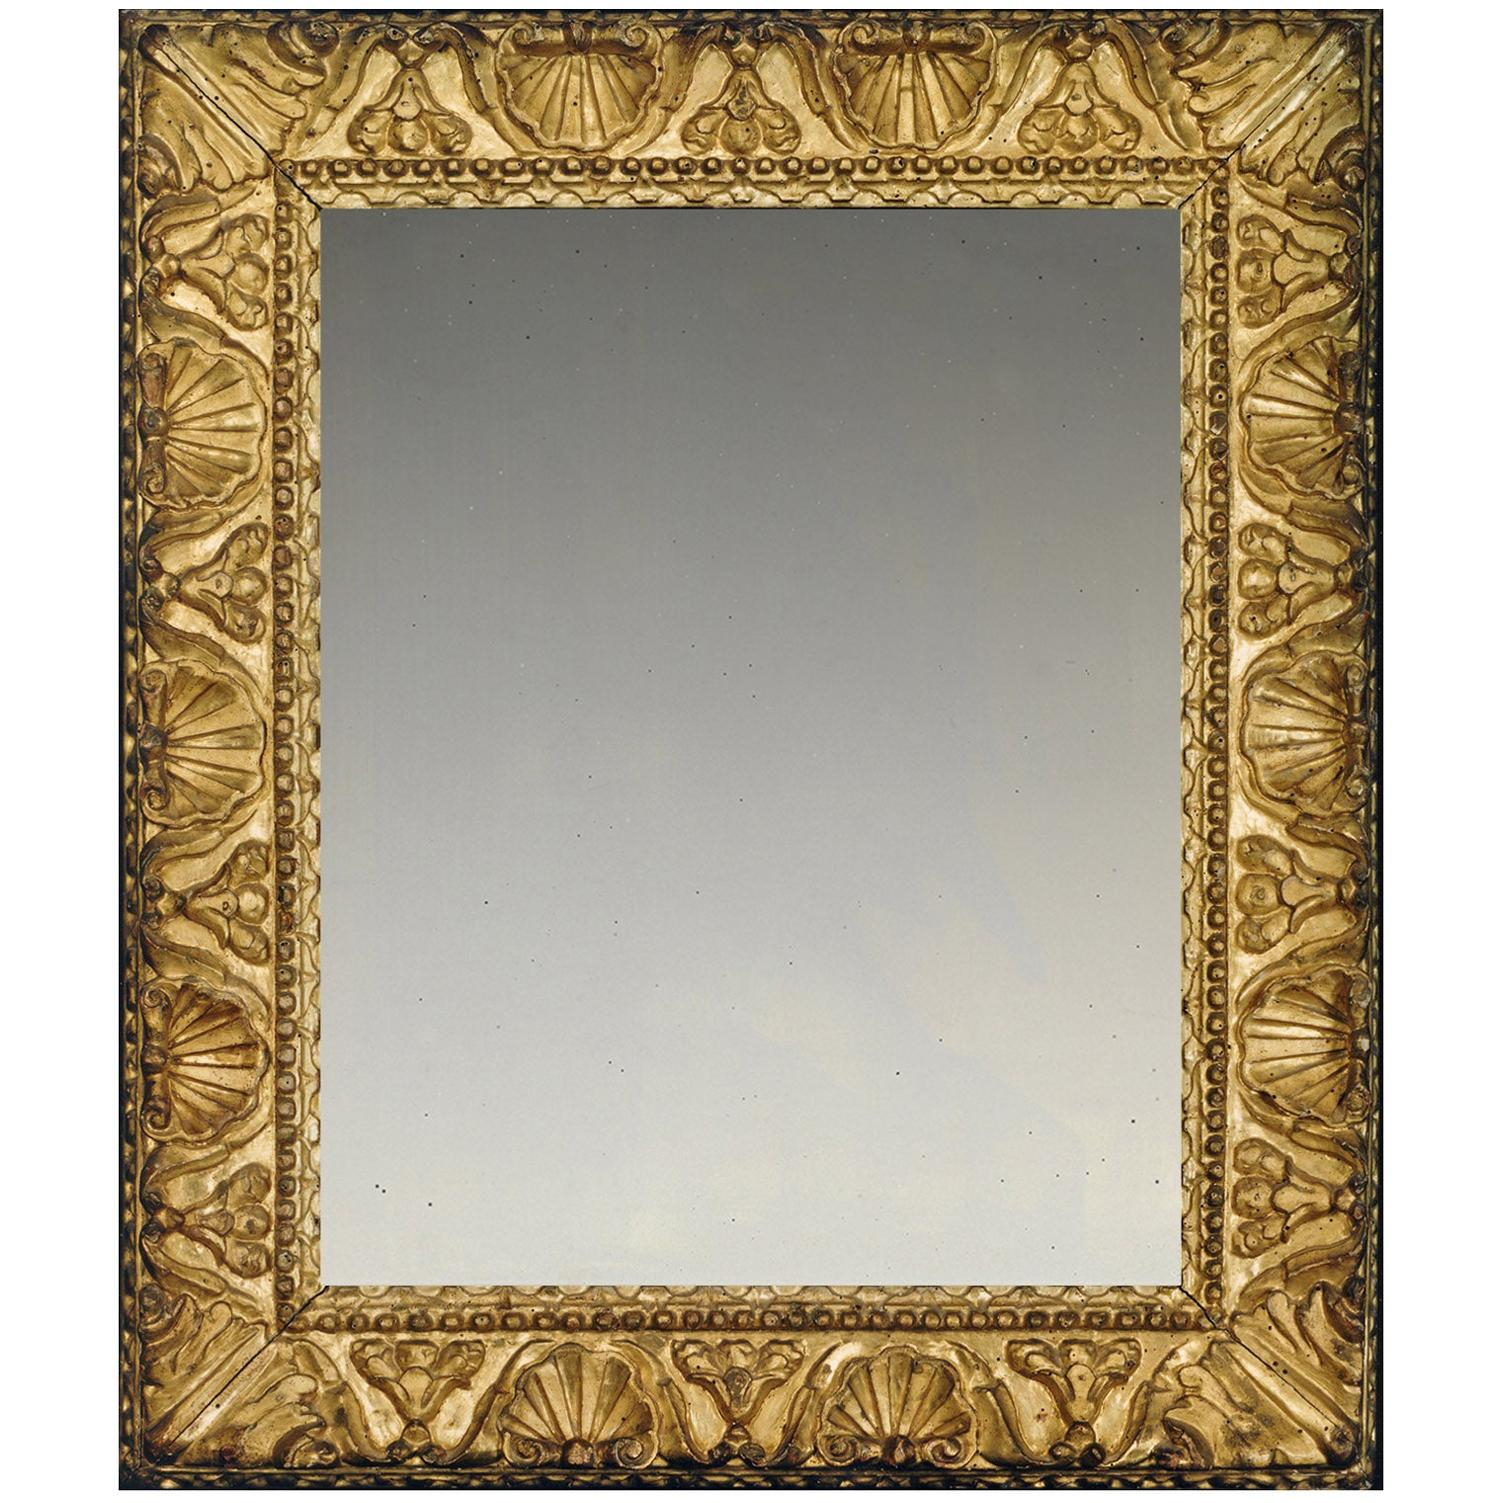 Venetian Style Mirrors - 165 For Sale On 1Stdibs with Rectangle Ornate Geometric Wall Mirrors (Image 27 of 30)